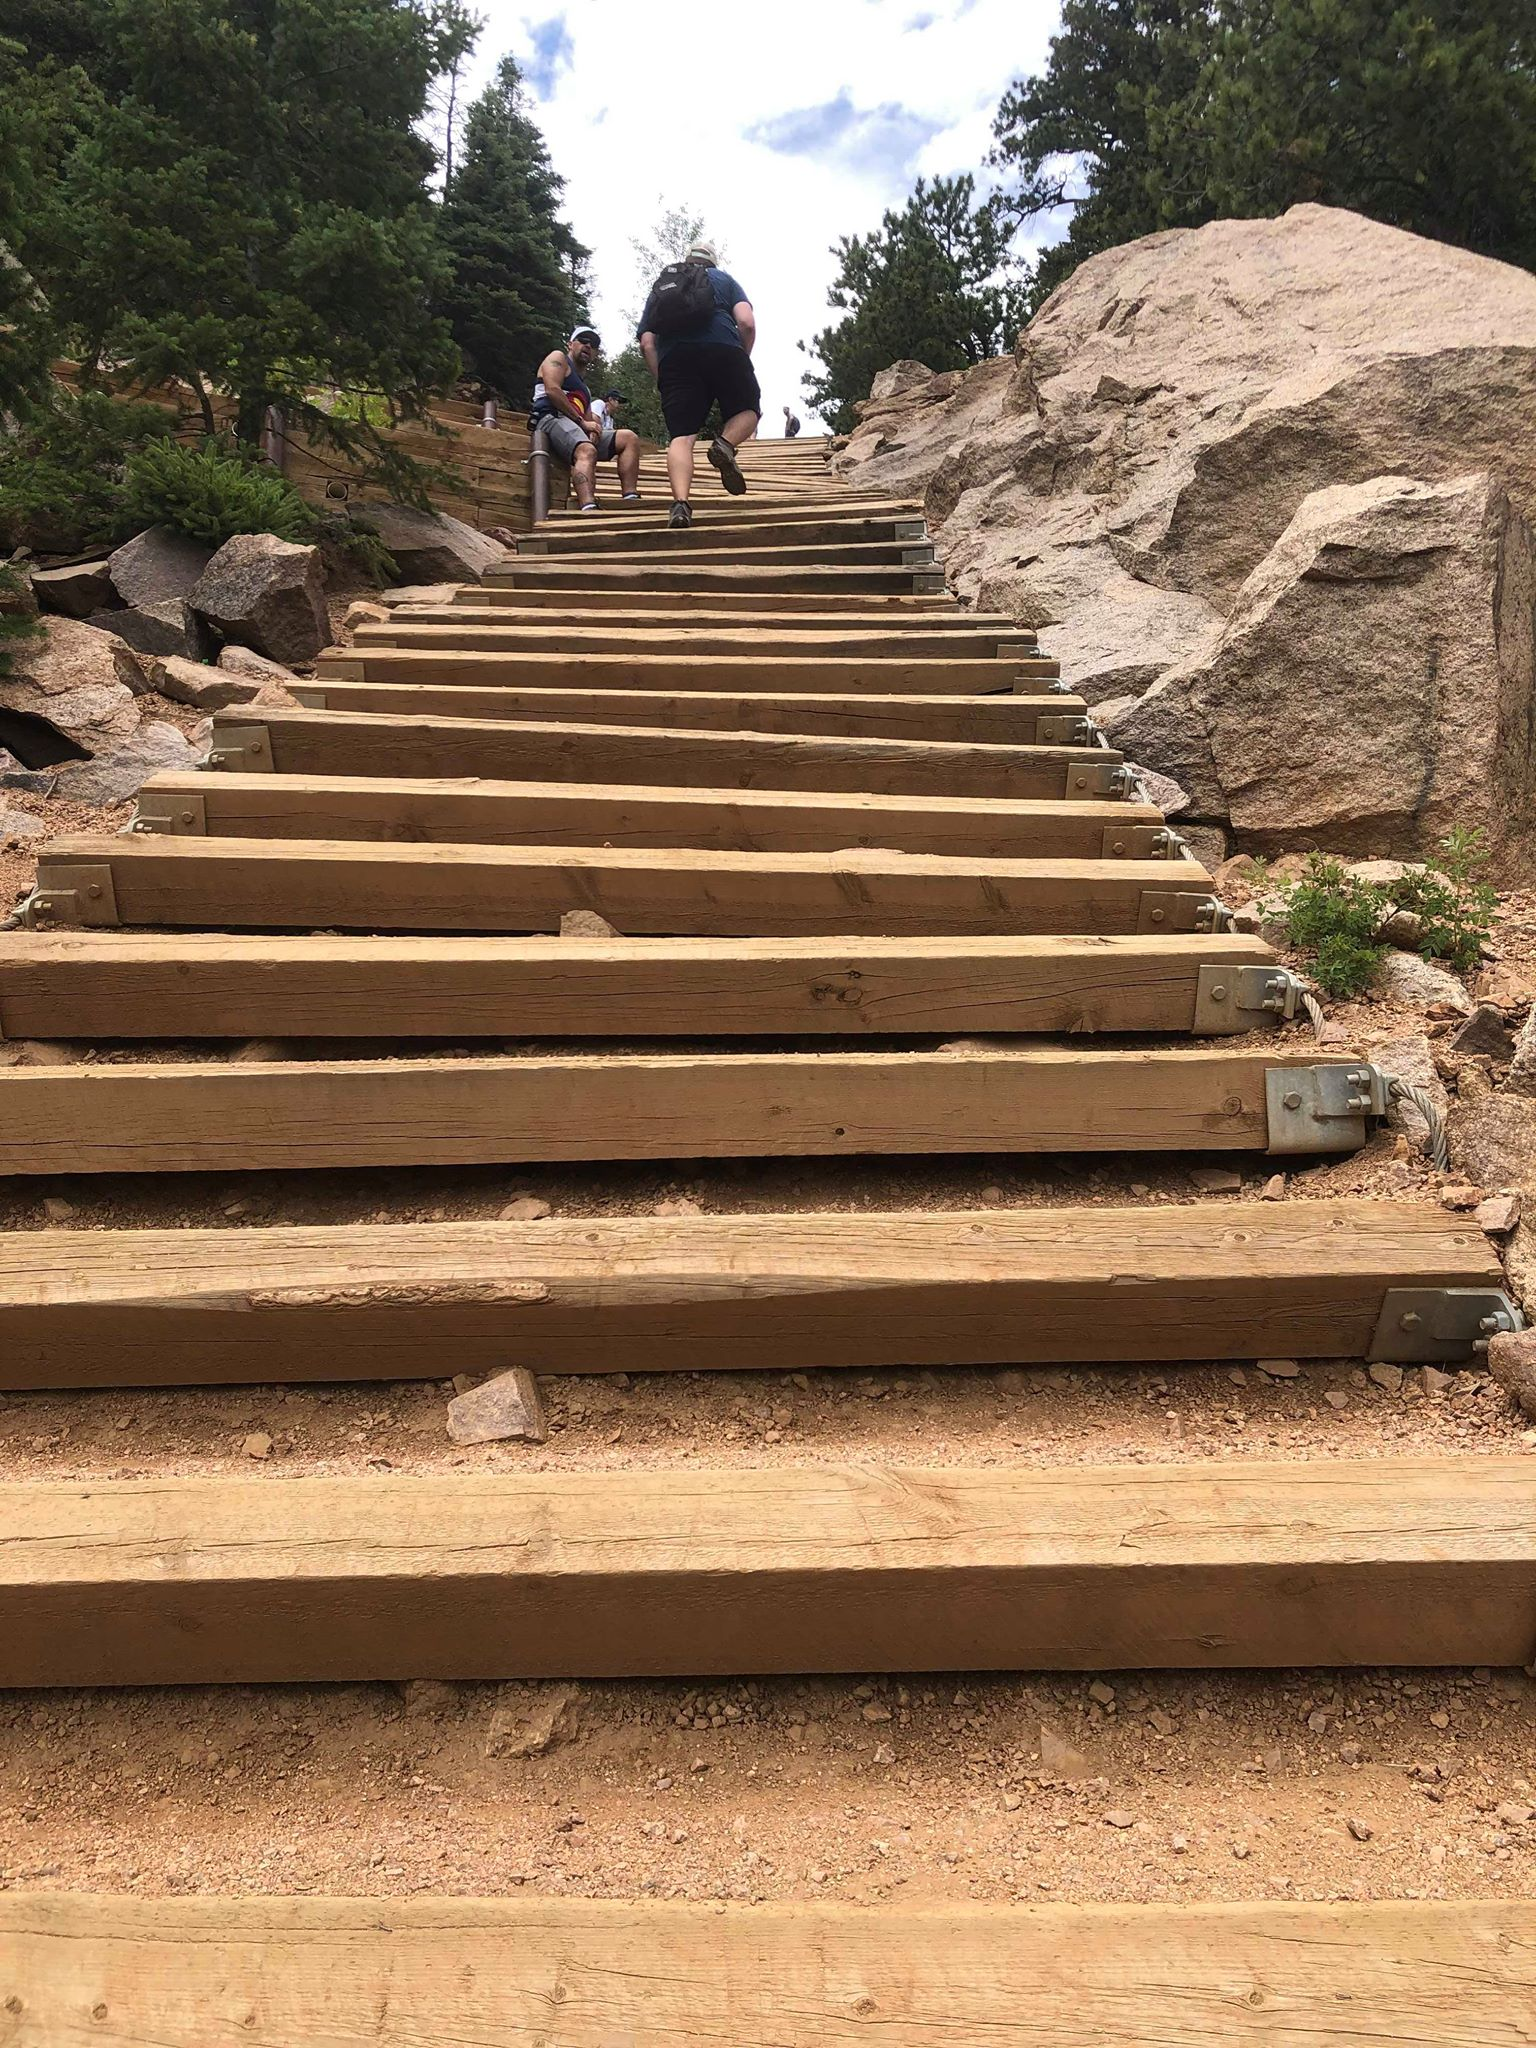 The Incline 8.jpg